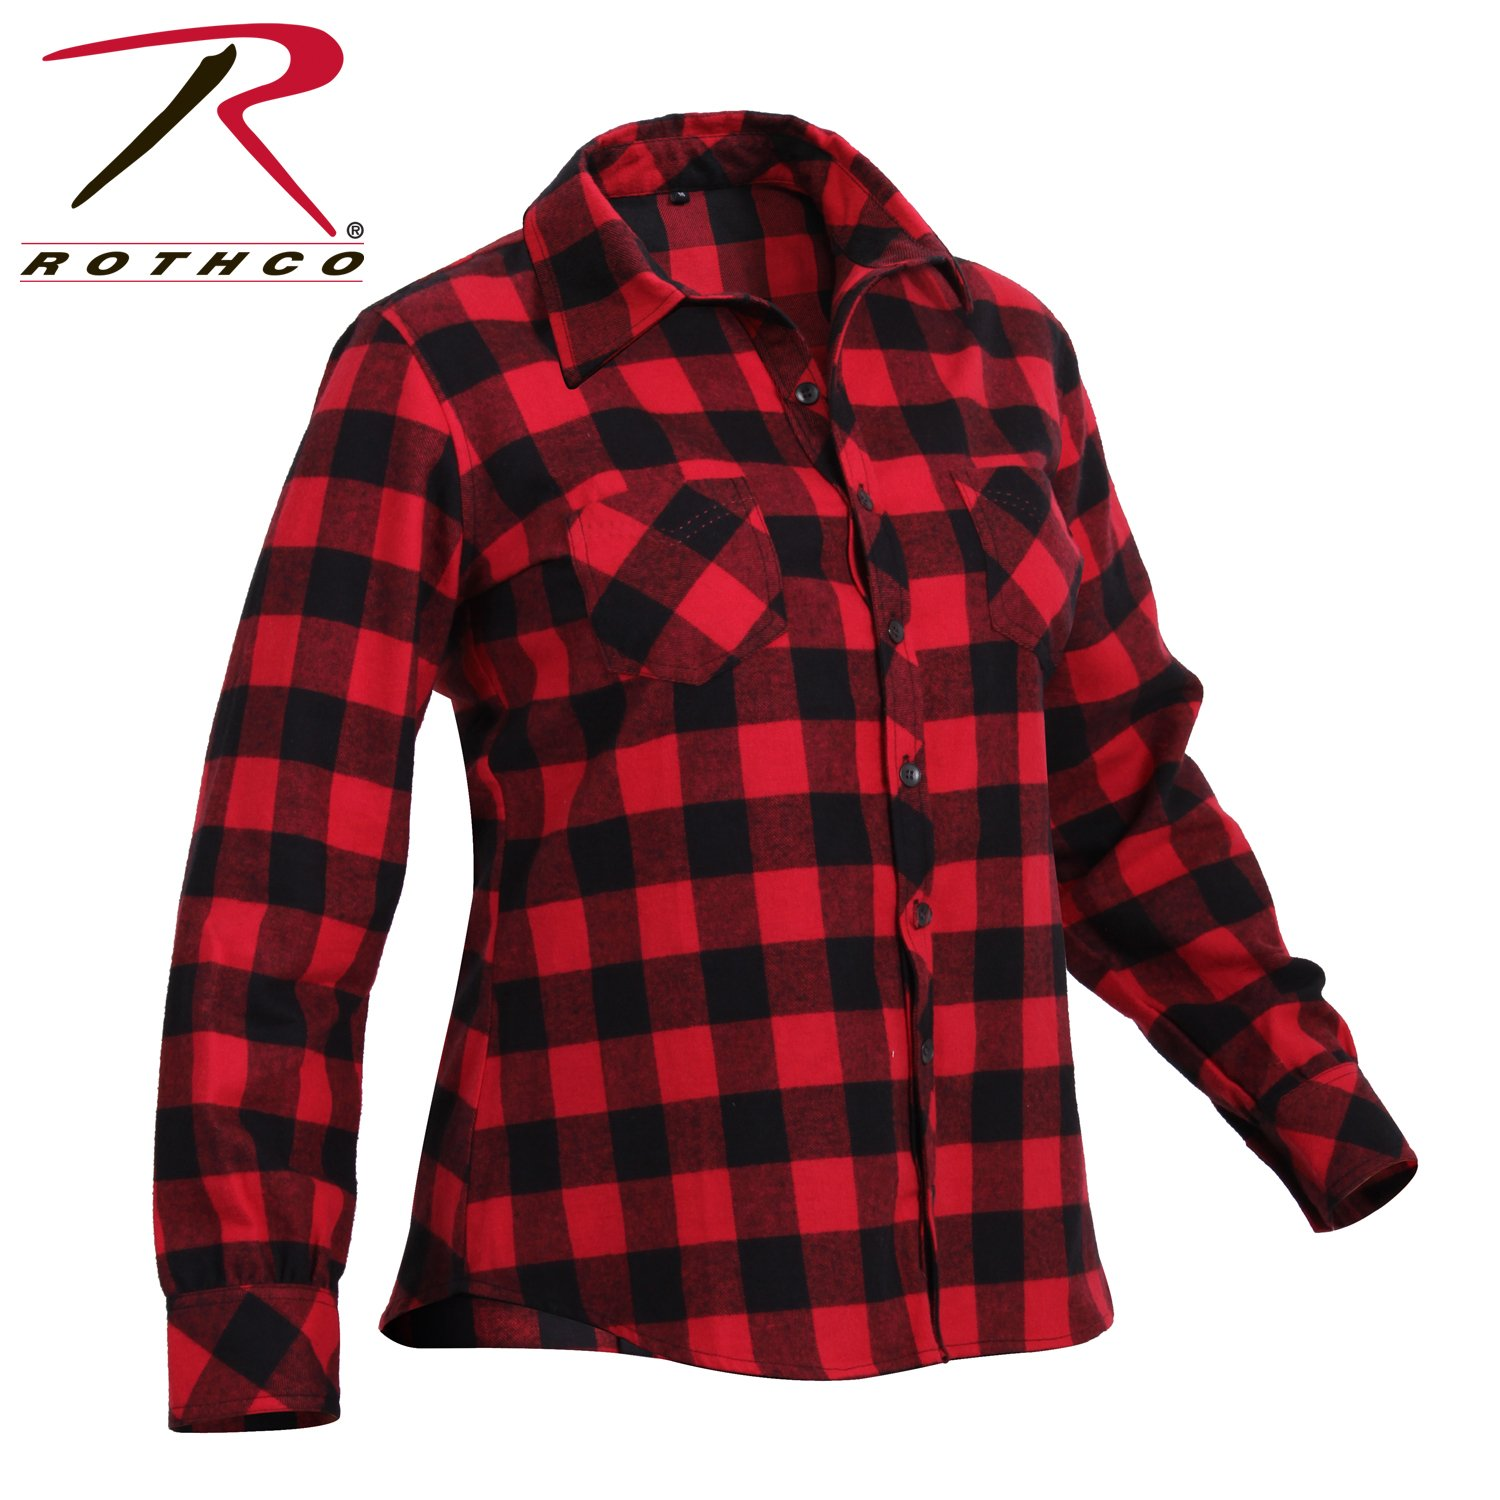 Rothco Womens Plaid Flannel Shirt, 2XL, Red/Black by Rothco